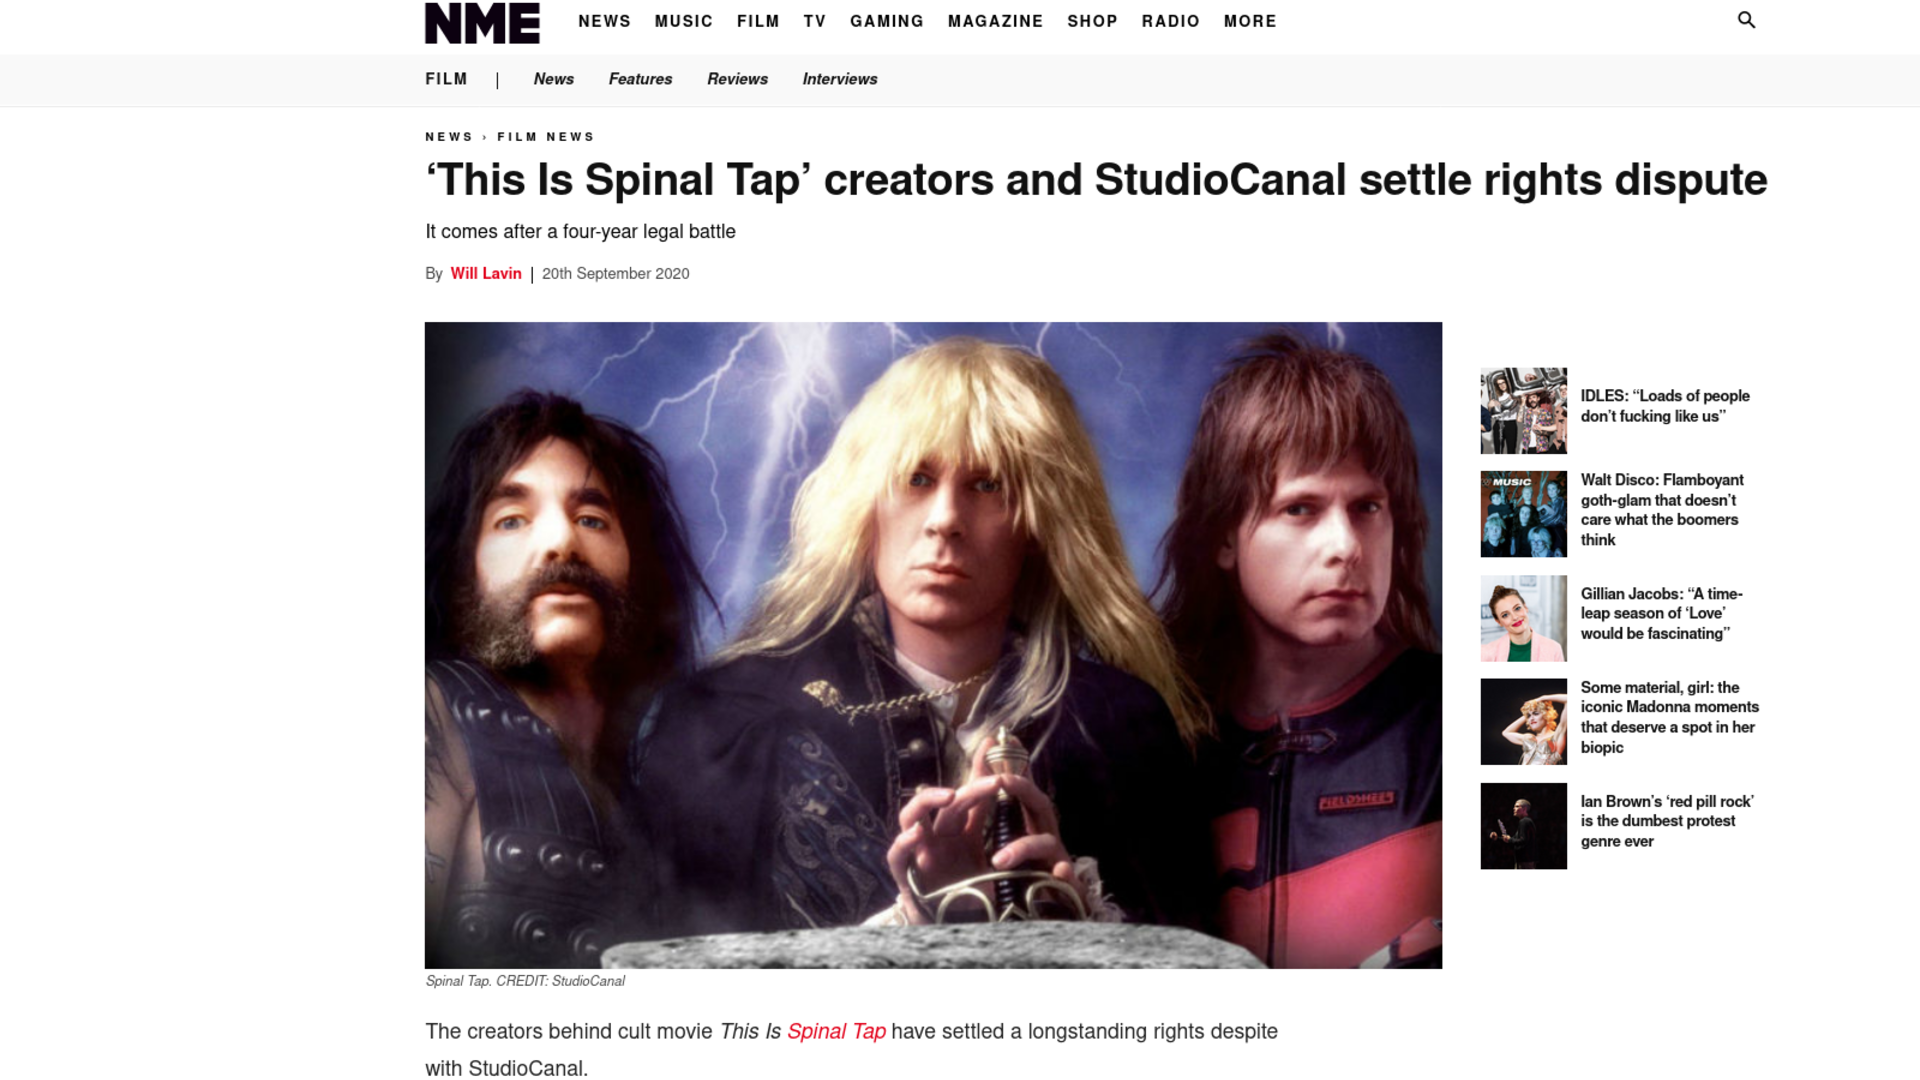 Fairness Rocks News 'This Is Spinal Tap' creators and StudioCanal settle rights dispute